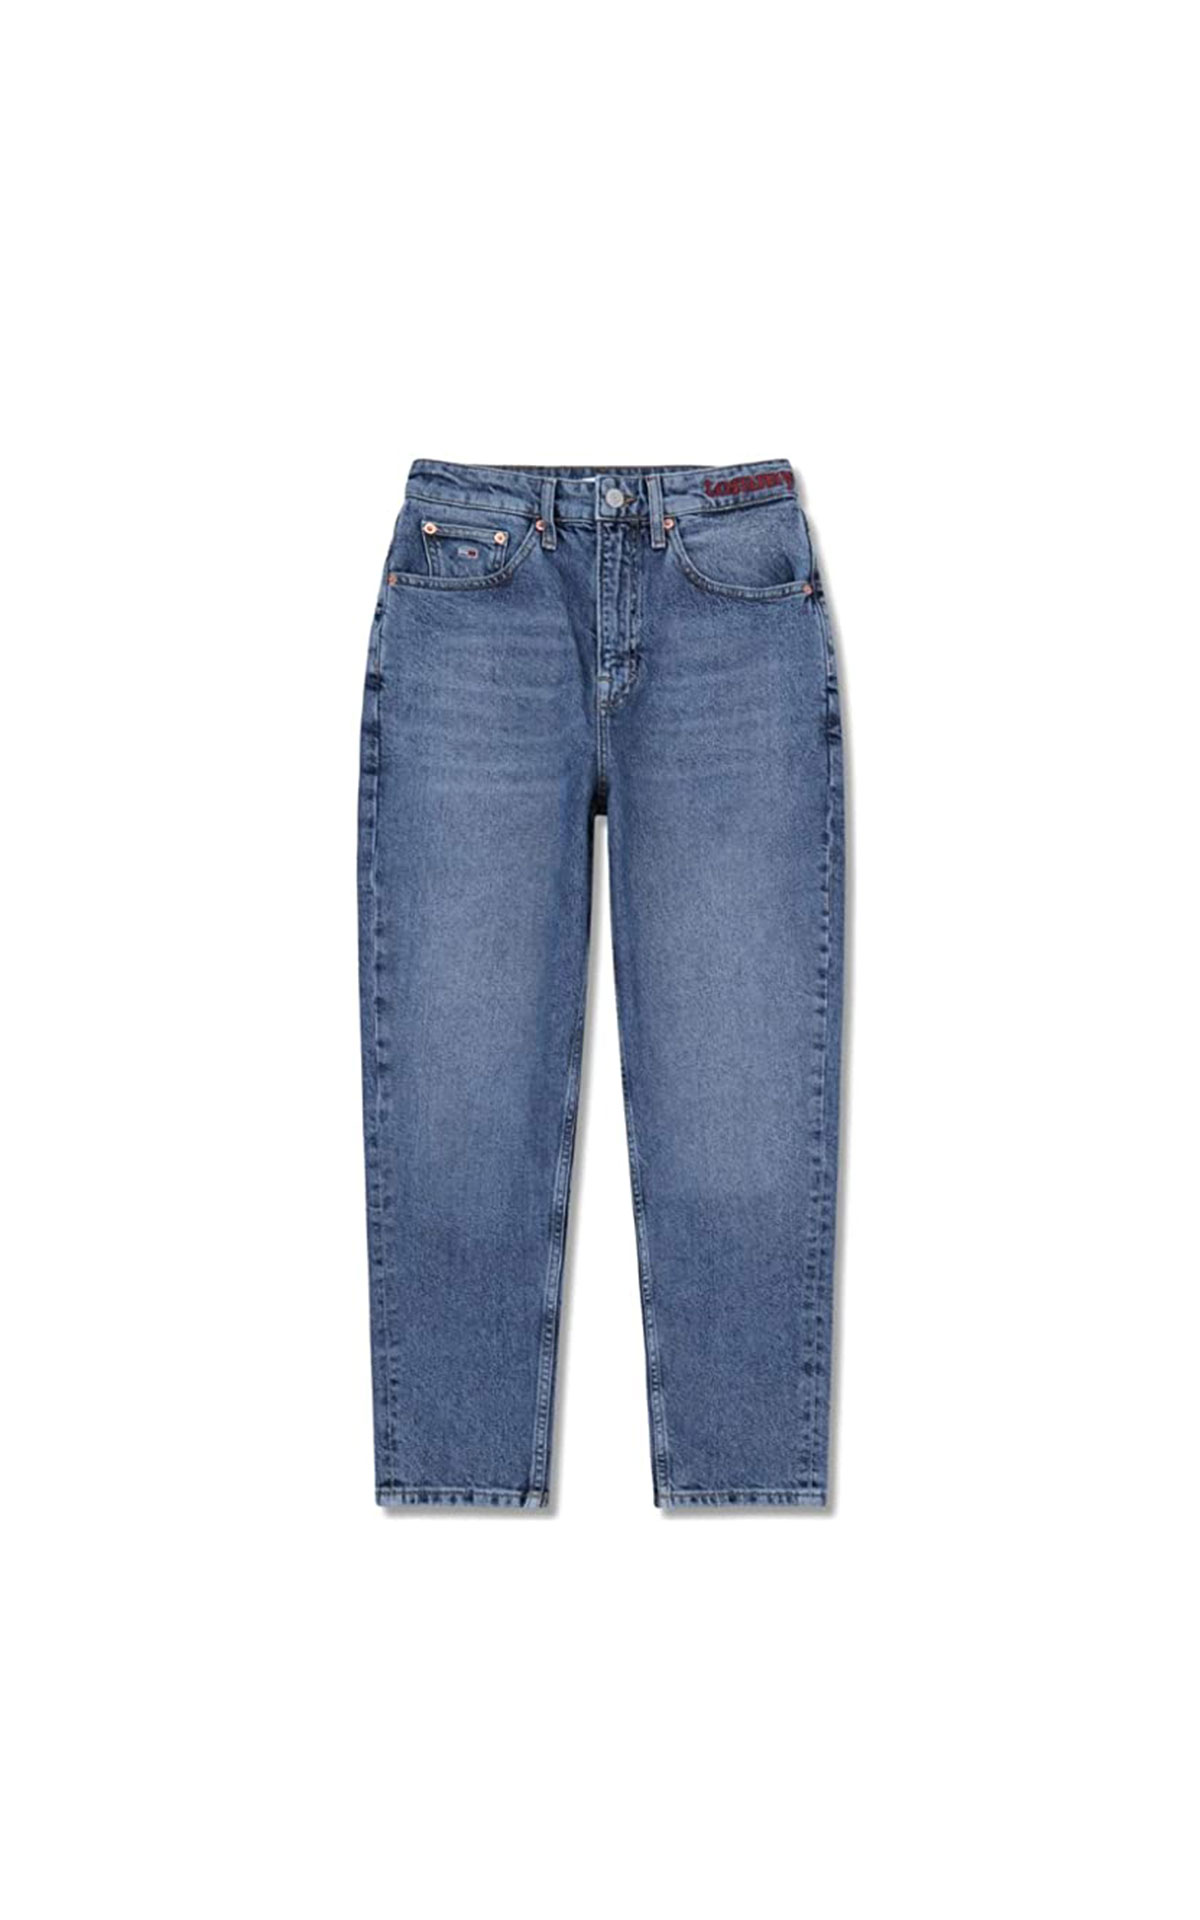 Tommy hilfiger denim high rise tapered jeans at The Bicester Village Shopping Collection